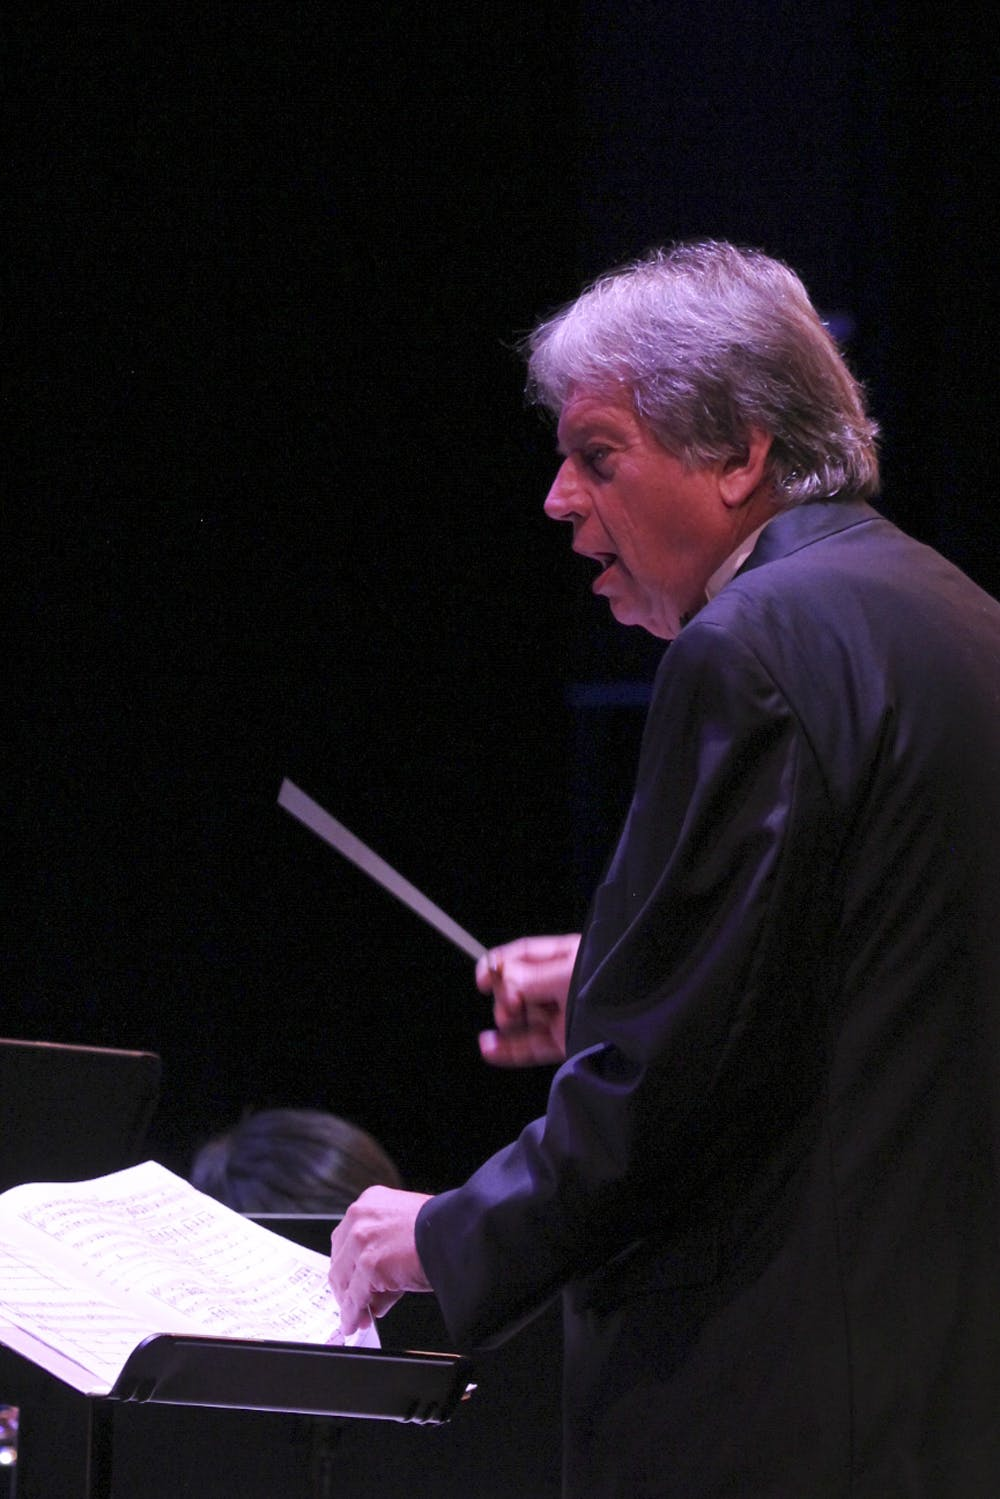 <p>Steven Bingham conducts the Santa Fe wind and percussion ensemble at the ninth annual Winds and the Classics concert in the Santa Fe College fine arts hall Oct. 1, 2015. The ensembles played a variety of songs including the Washington Post March, America the Beautiful and a tribute to David Gorham.</p>